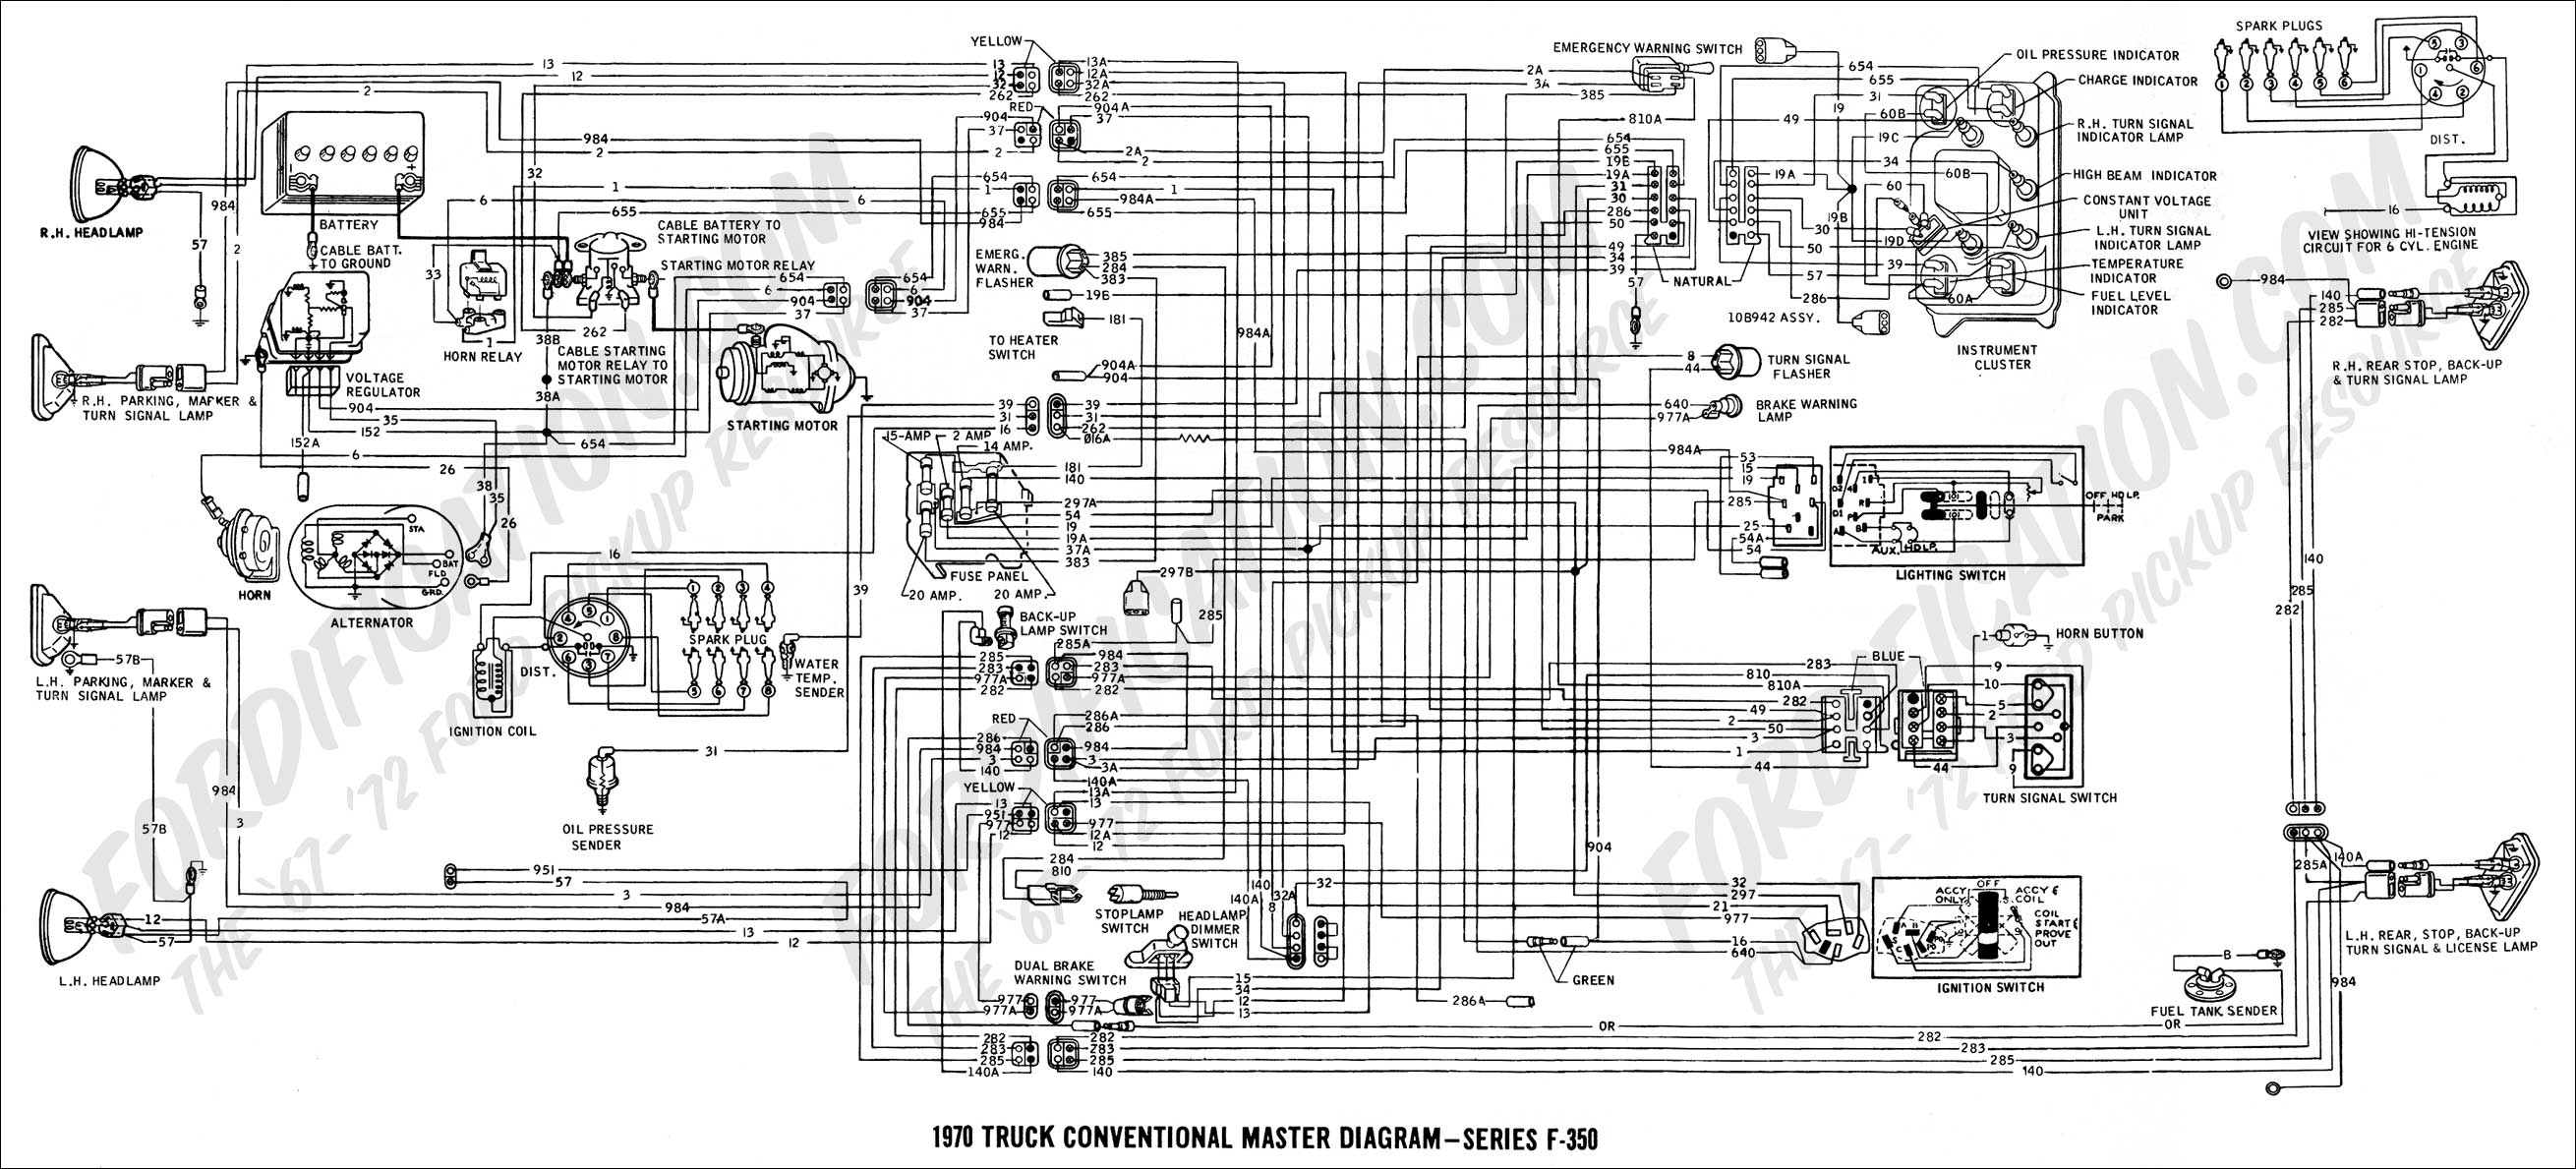 wiring diagram 70F350_master ford truck technical drawings and schematics section h wiring 1999 f250 trailer wiring diagram at webbmarketing.co